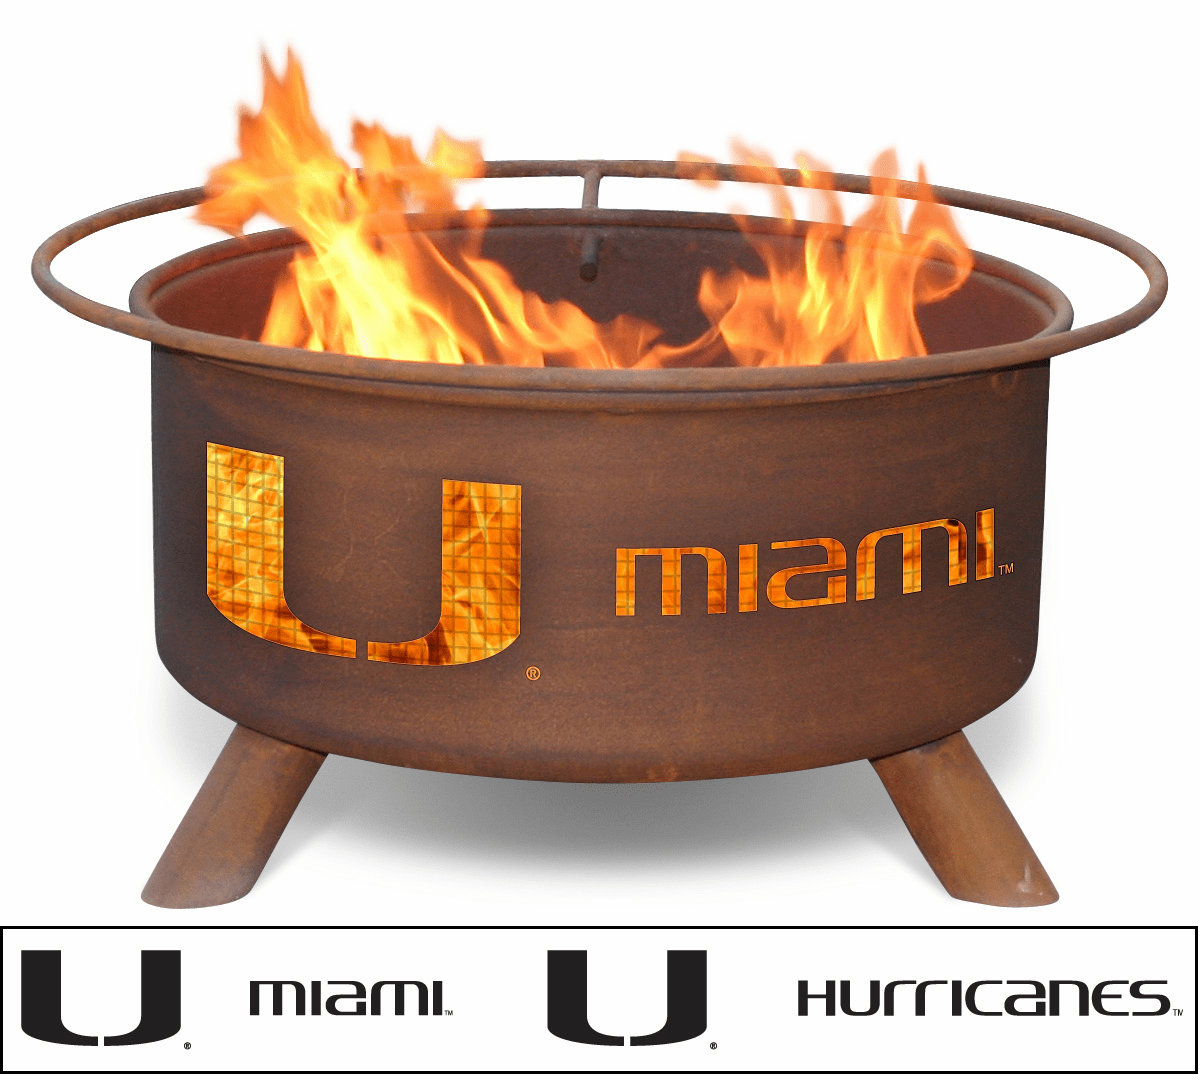 University of Miami Hurricanes Fire Pit - 'Canes Logo Ring